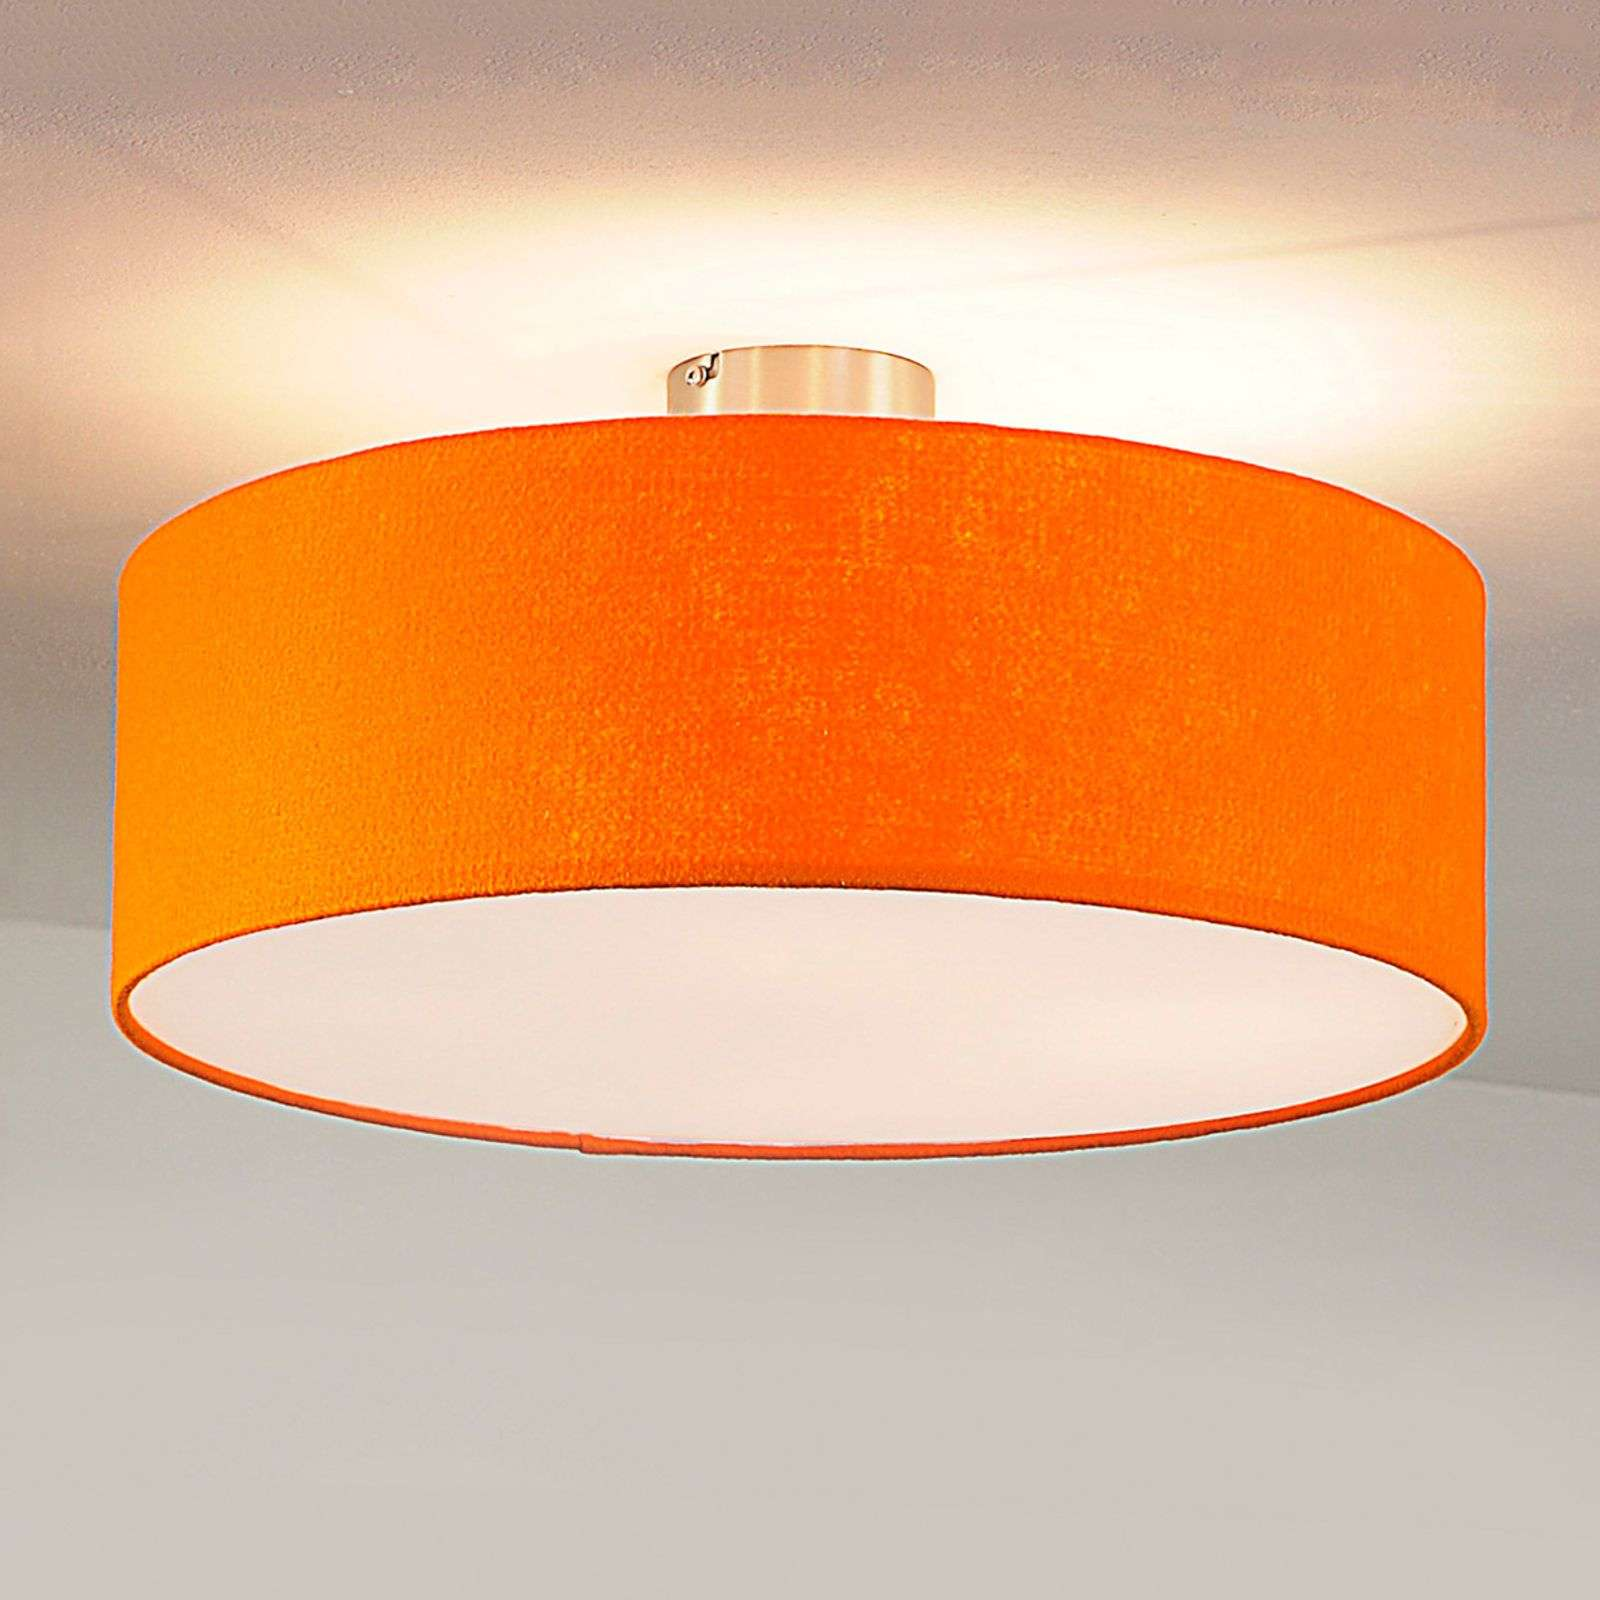 Plafonnier rond en feutre, orange